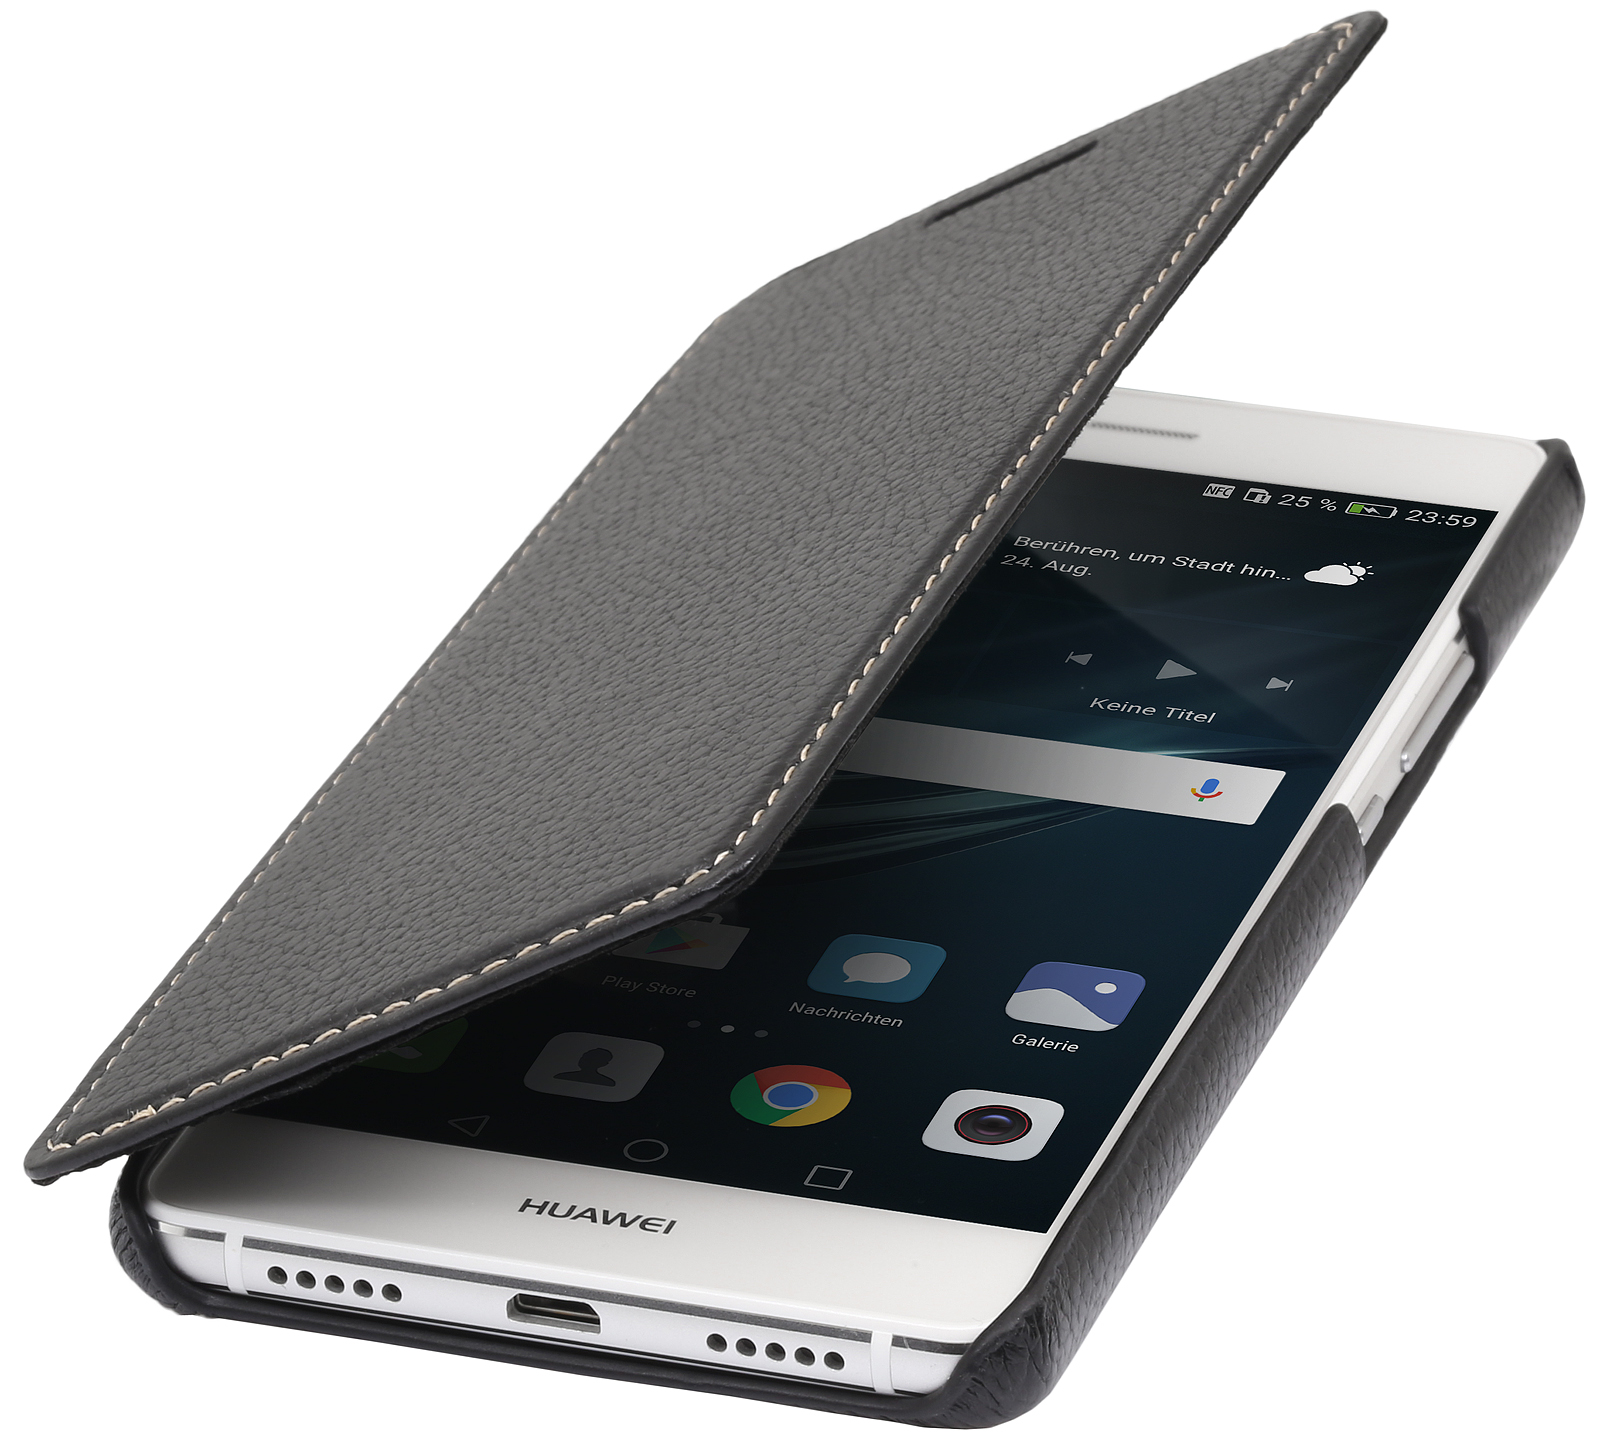 Huawei P9 lite cover Book Type in leather without clip : StilGut